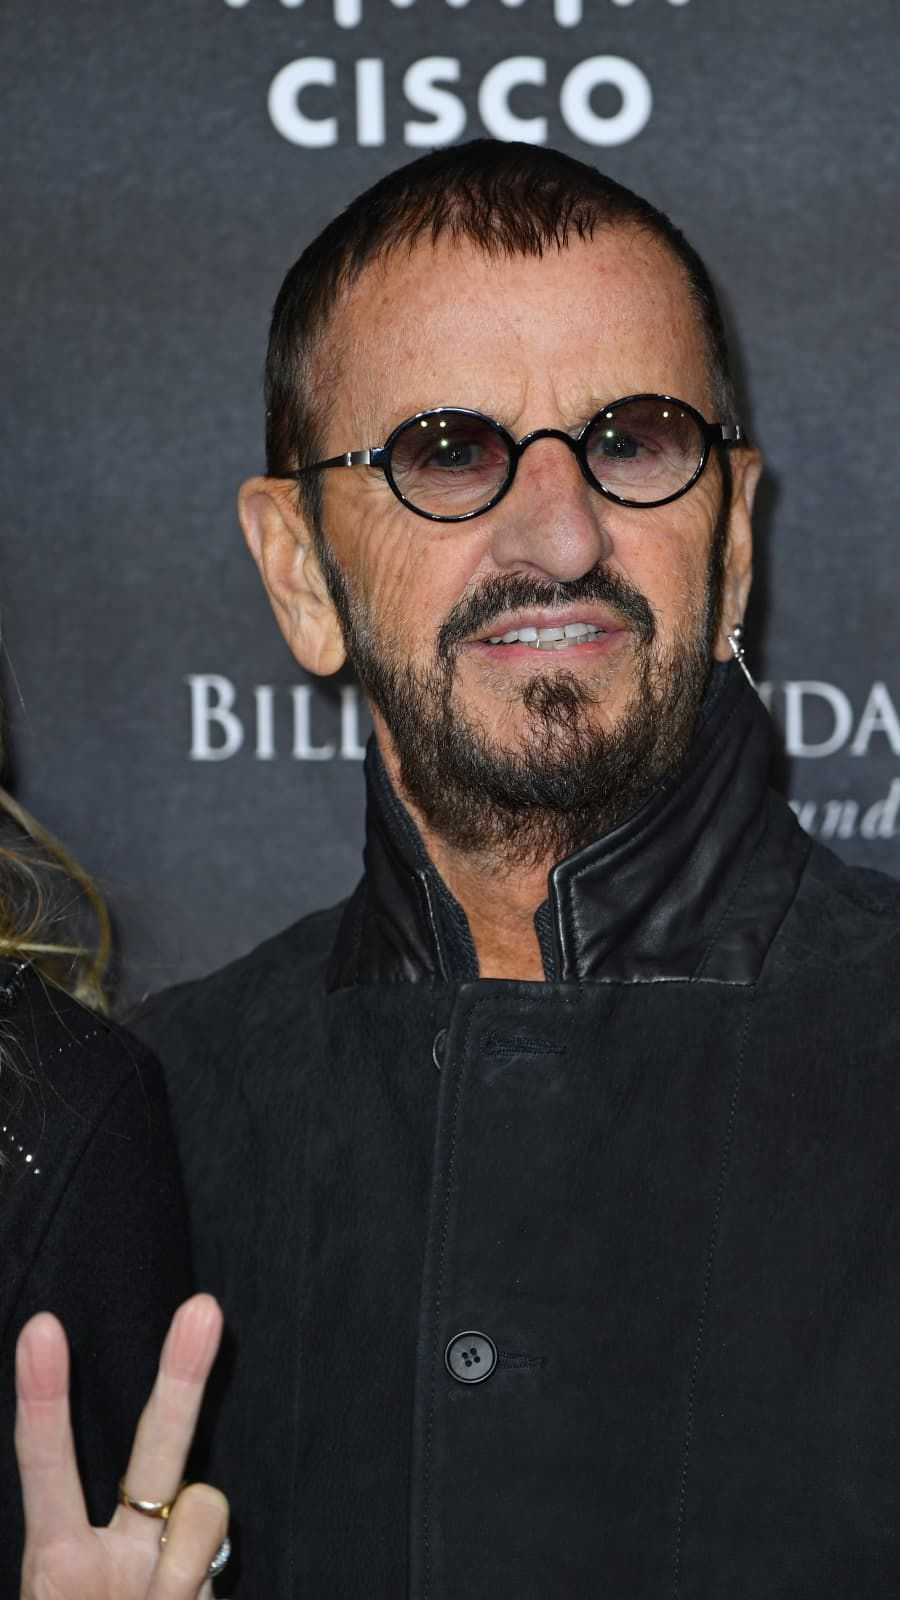 Ringo Starr Celebrated His 80th Birthday On July 7 Ringostar Musiclegend Musicstar Ringo Starr Paul Mccartney Music Star